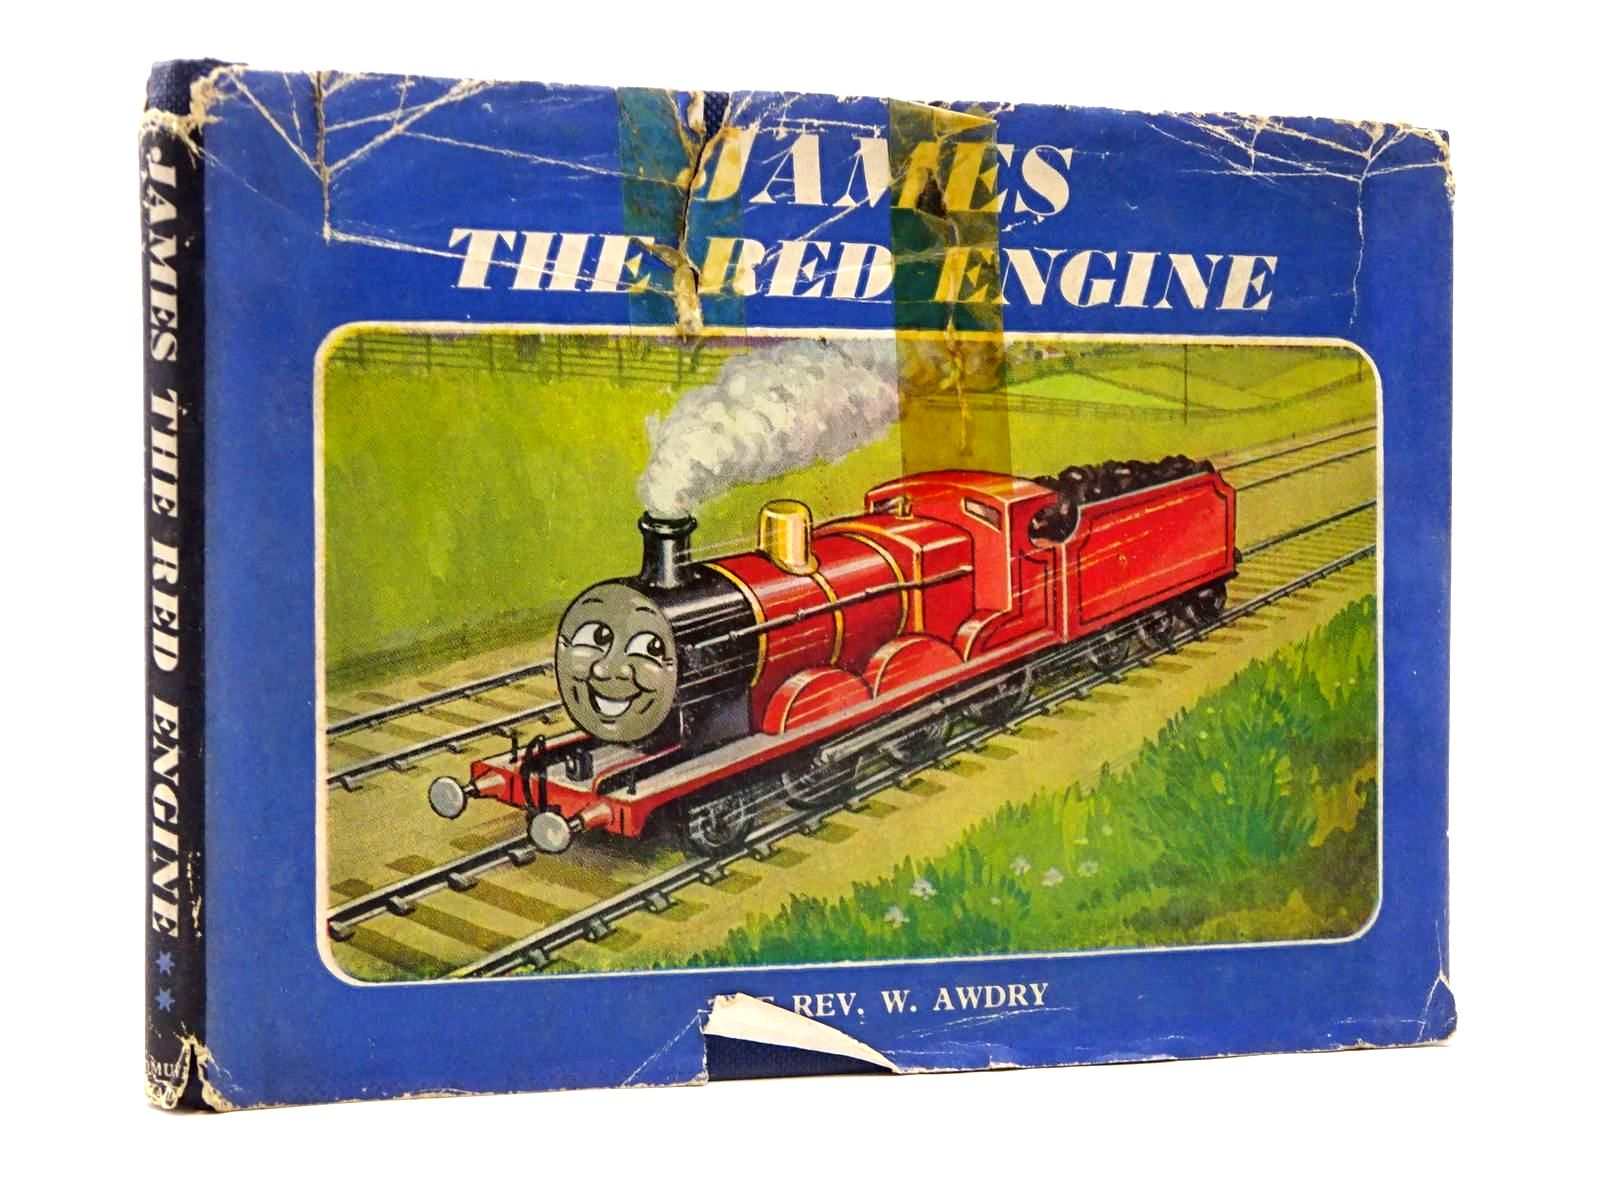 Photo of JAMES THE RED ENGINE written by Awdry, Rev. W. illustrated by Dalby, C. Reginald published by Edmund Ward (STOCK CODE: 2130424)  for sale by Stella & Rose's Books